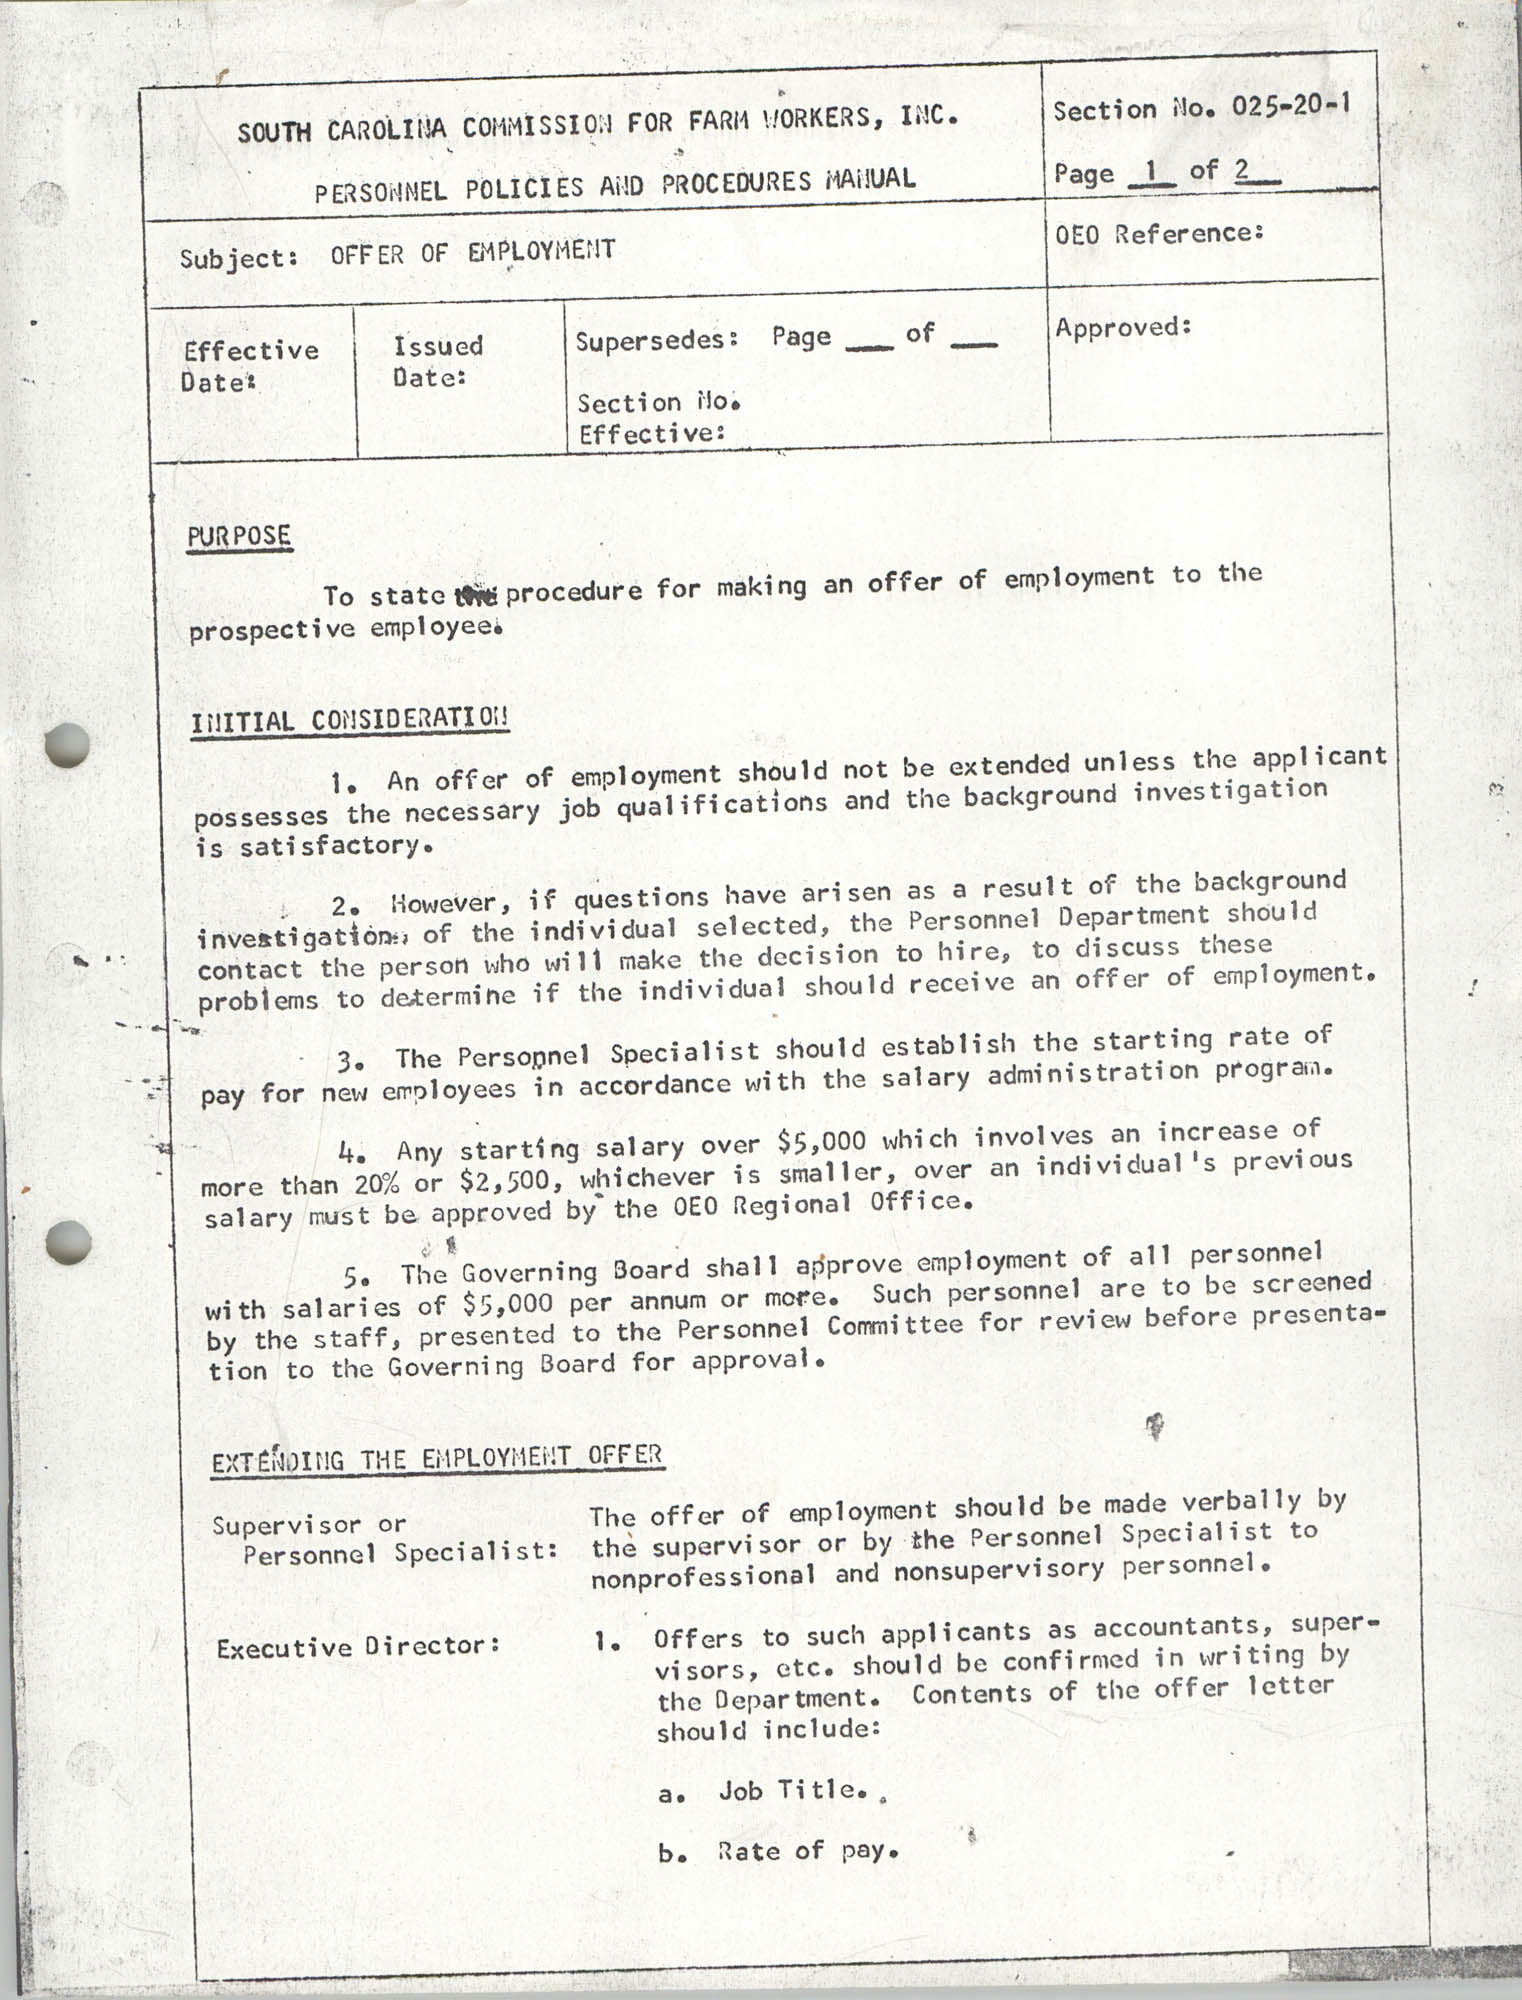 Personnel Policies and Procedures Manual, Section No. 025-20-1, Page 1